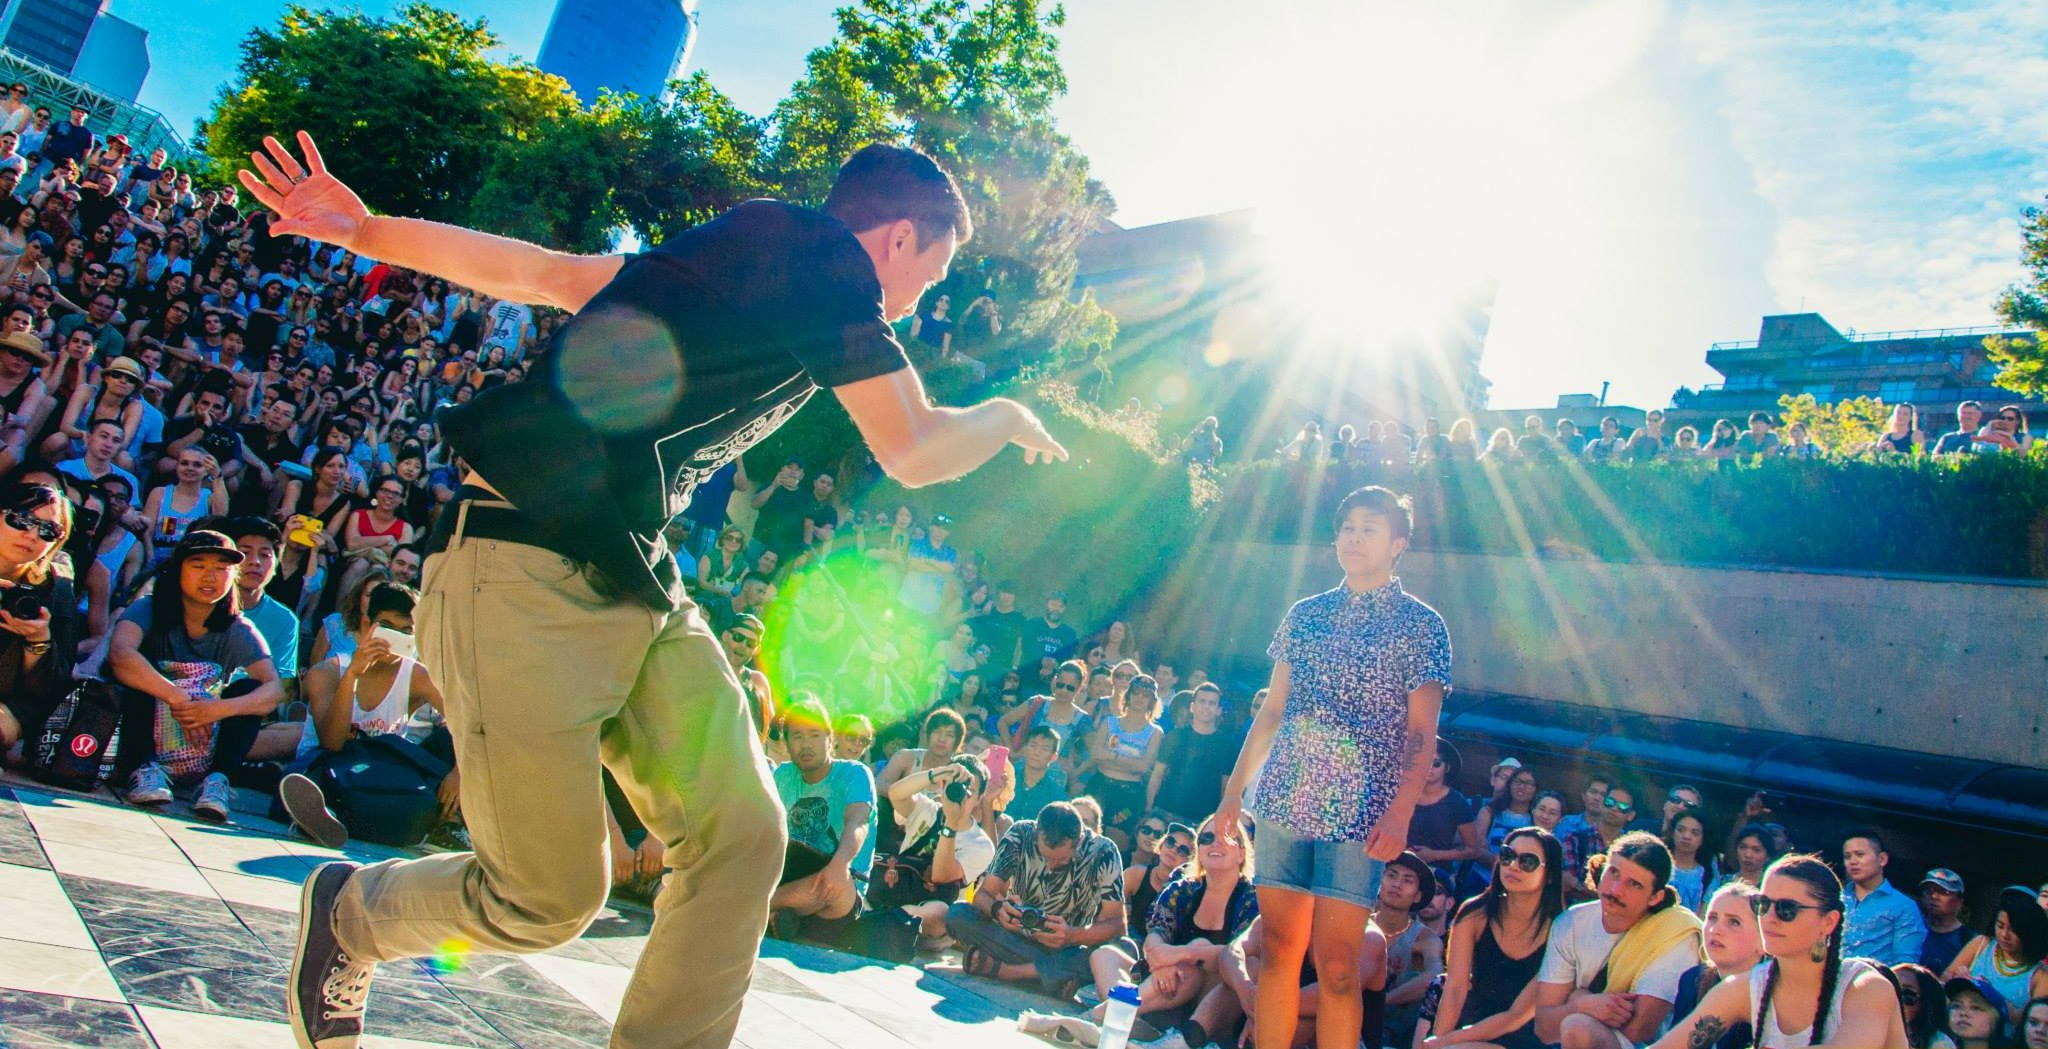 Vancouver's 5th annual Street Dance Festival returns this weekend